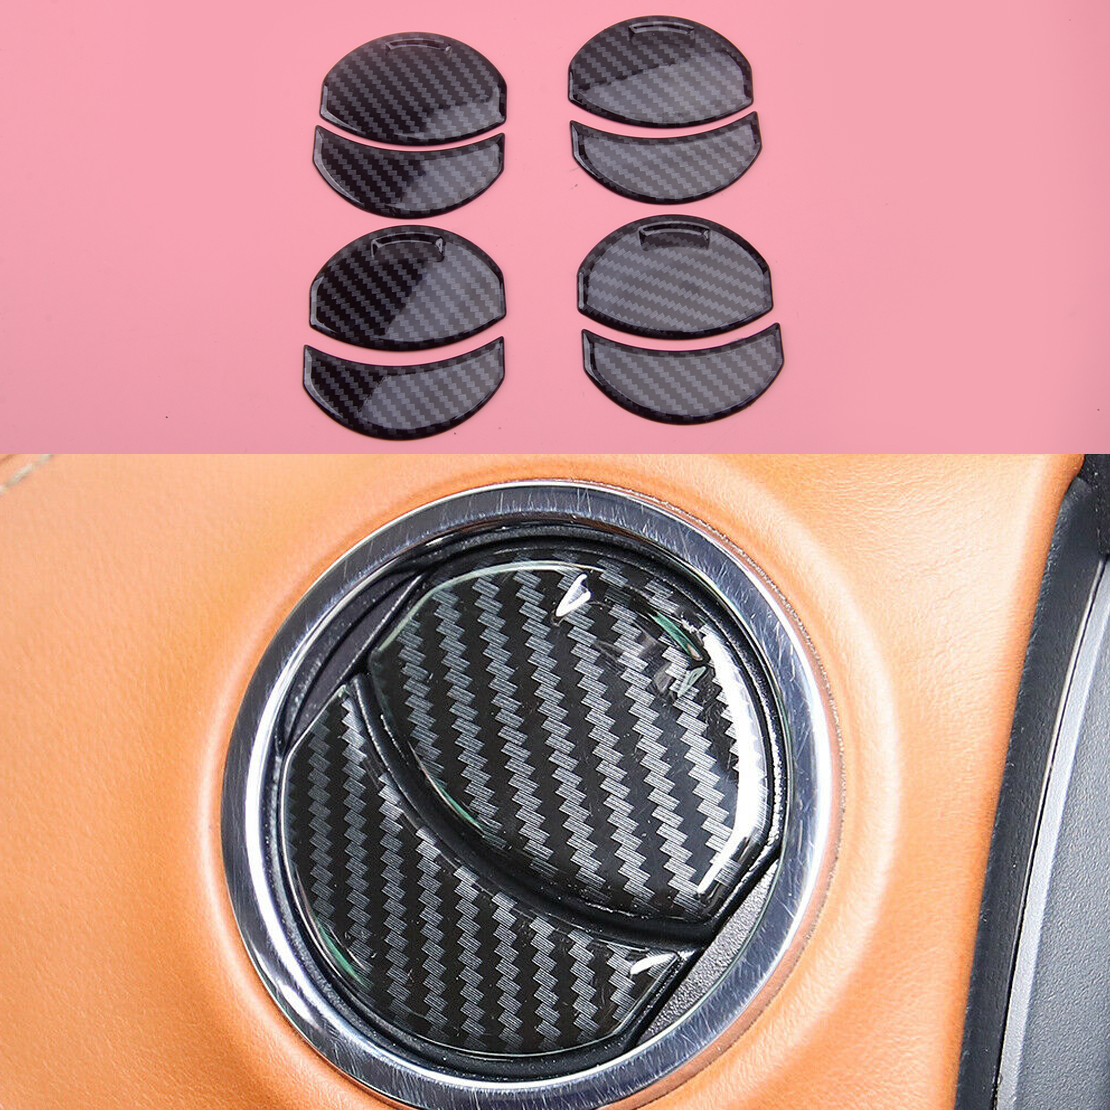 8pcs/Set Front Air Vent Outlet Overlay Cover Trim Decoration Car ABS Fit for Toyota Tundra 2014 2015 2016 2017 2018 2019 2020